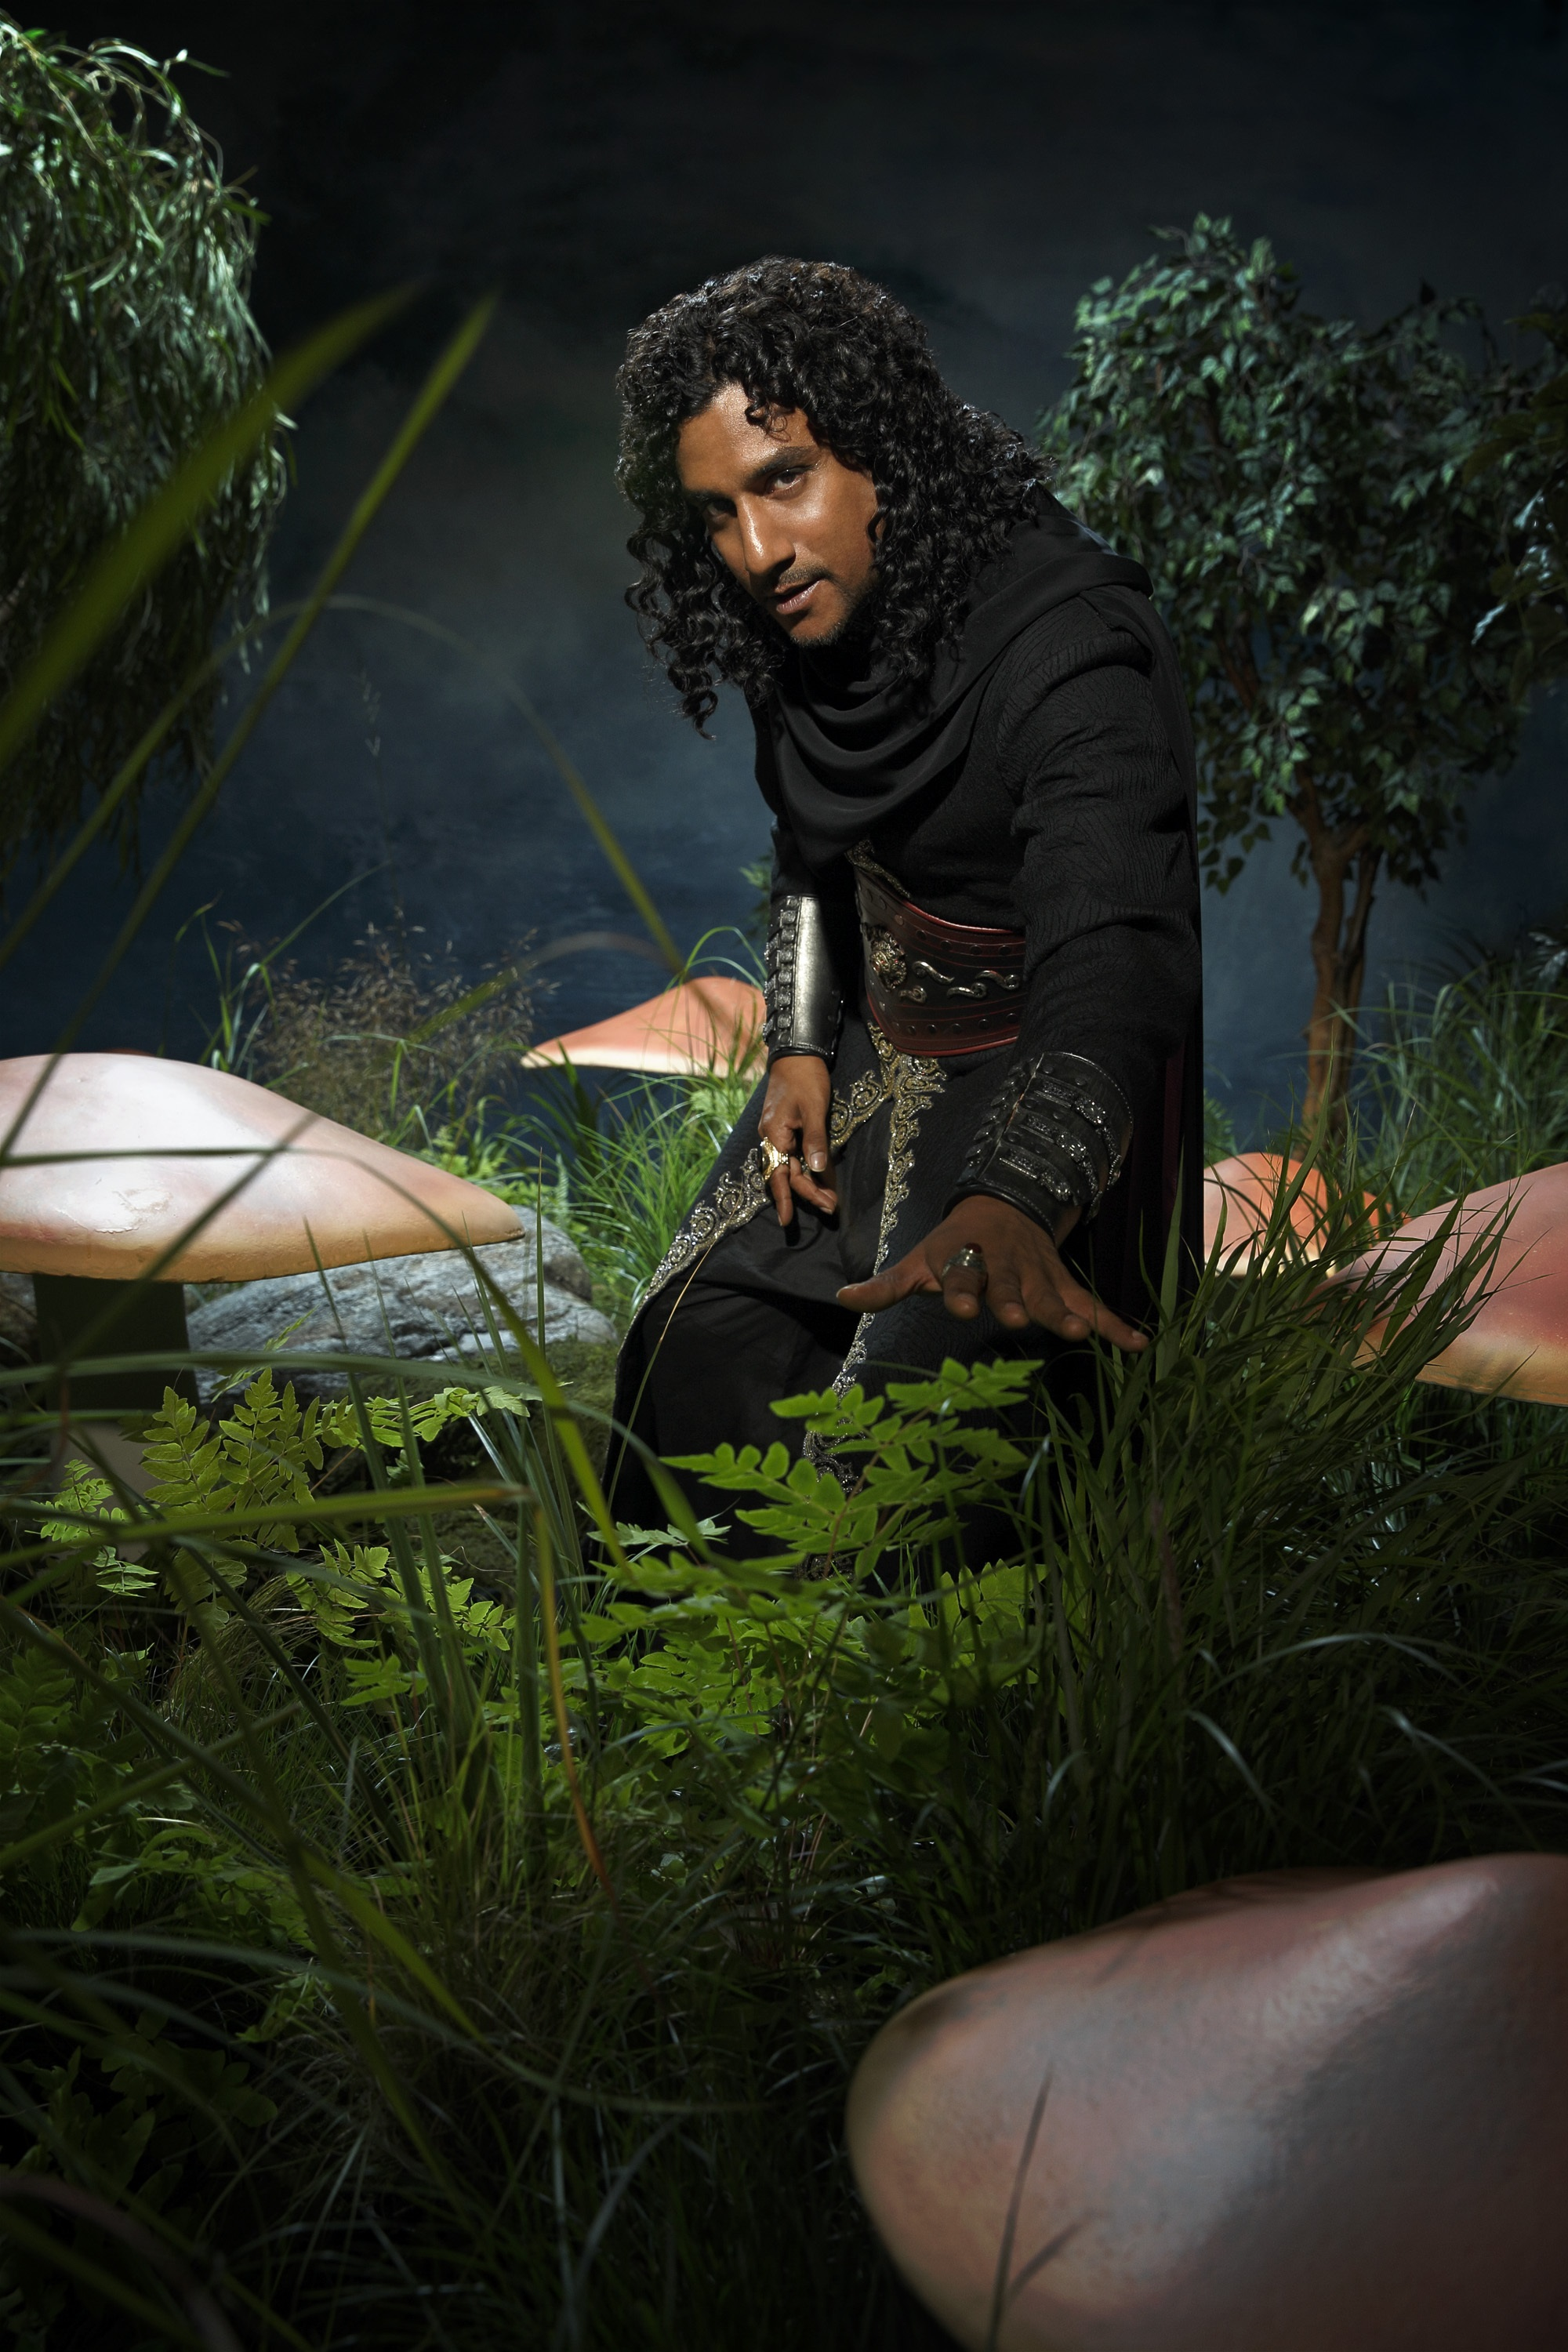 Jafar (Once Upon a Time)